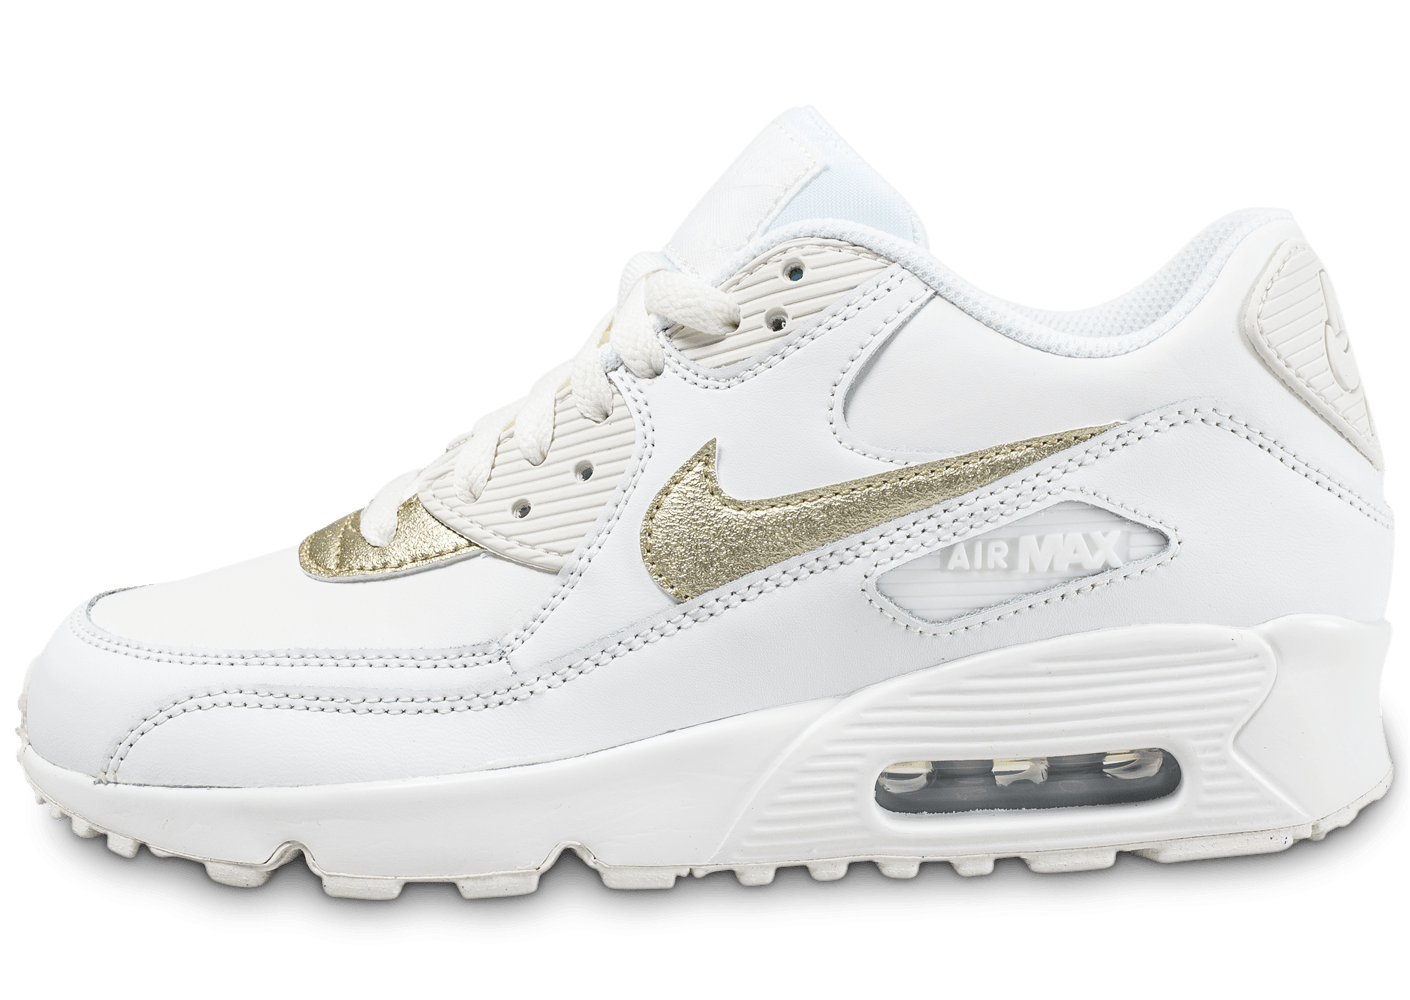 acheter en ligne f08eb 8cb9d Nike Air Max 90 Leather Junior blanche et or